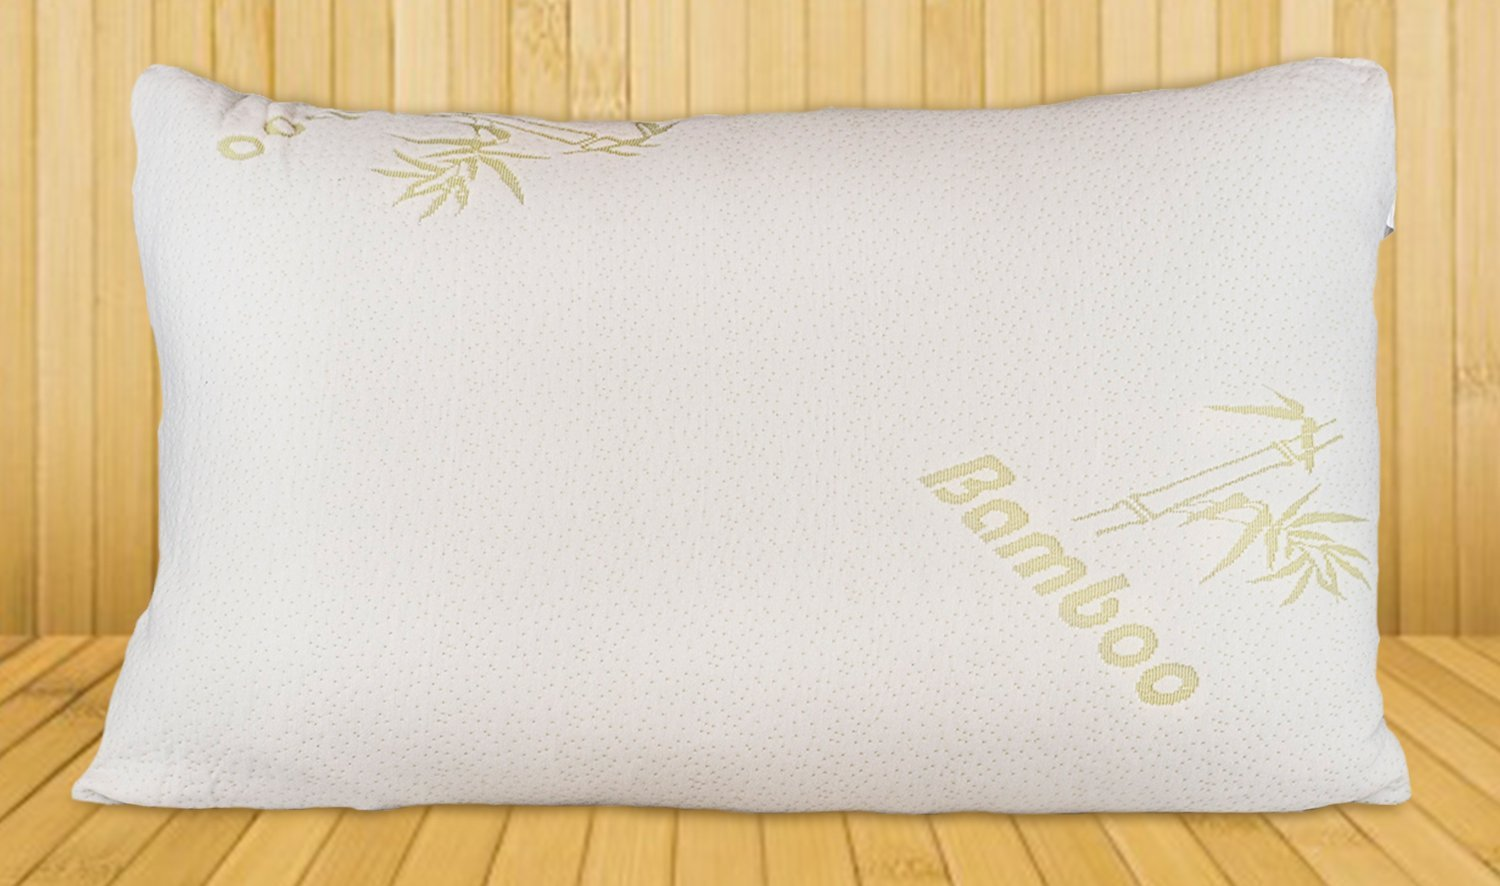 fill derived alternative essence usa with pillow rayon premium cool of dp poly hypoallergenic and made com ultimate bamboo down stay amazon fiber cover